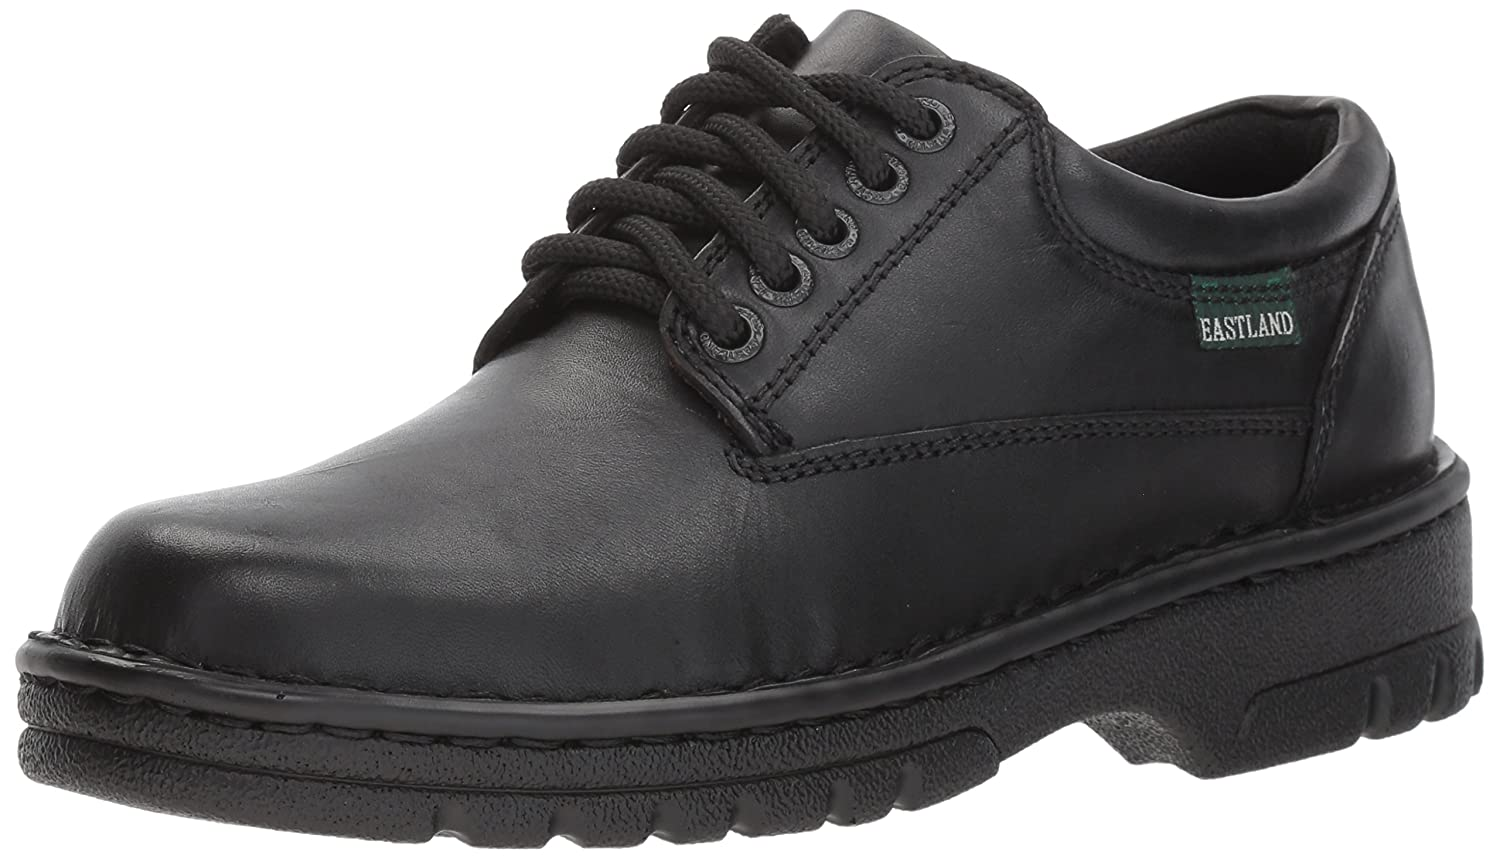 Eastland レディース Plainview B000K7A87I 5.5 womens_us|ブラック ブラック 5.5 womens_us